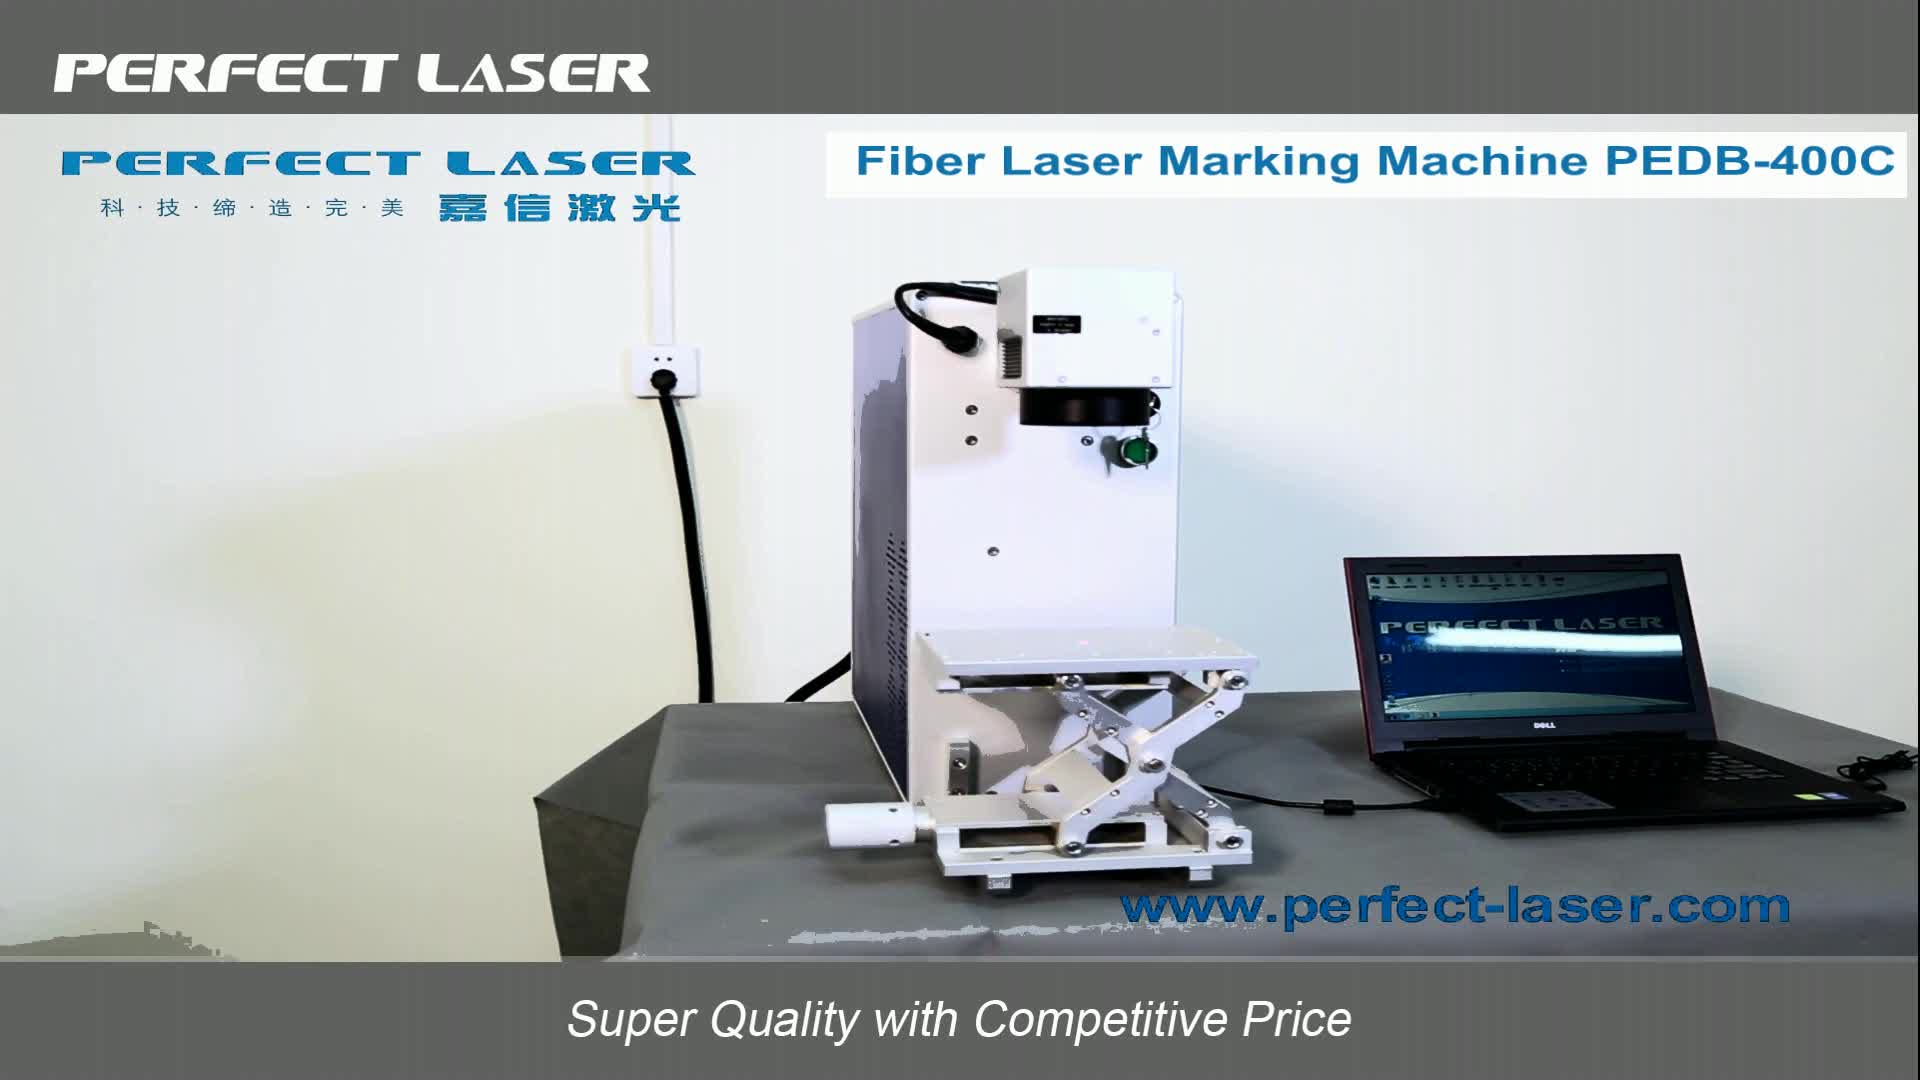 3 Years Warranty JPT RAYCUS 20W 30W 50W Color Mini Portable Fiber Laser Marking Machine for Metal Stainless Steel